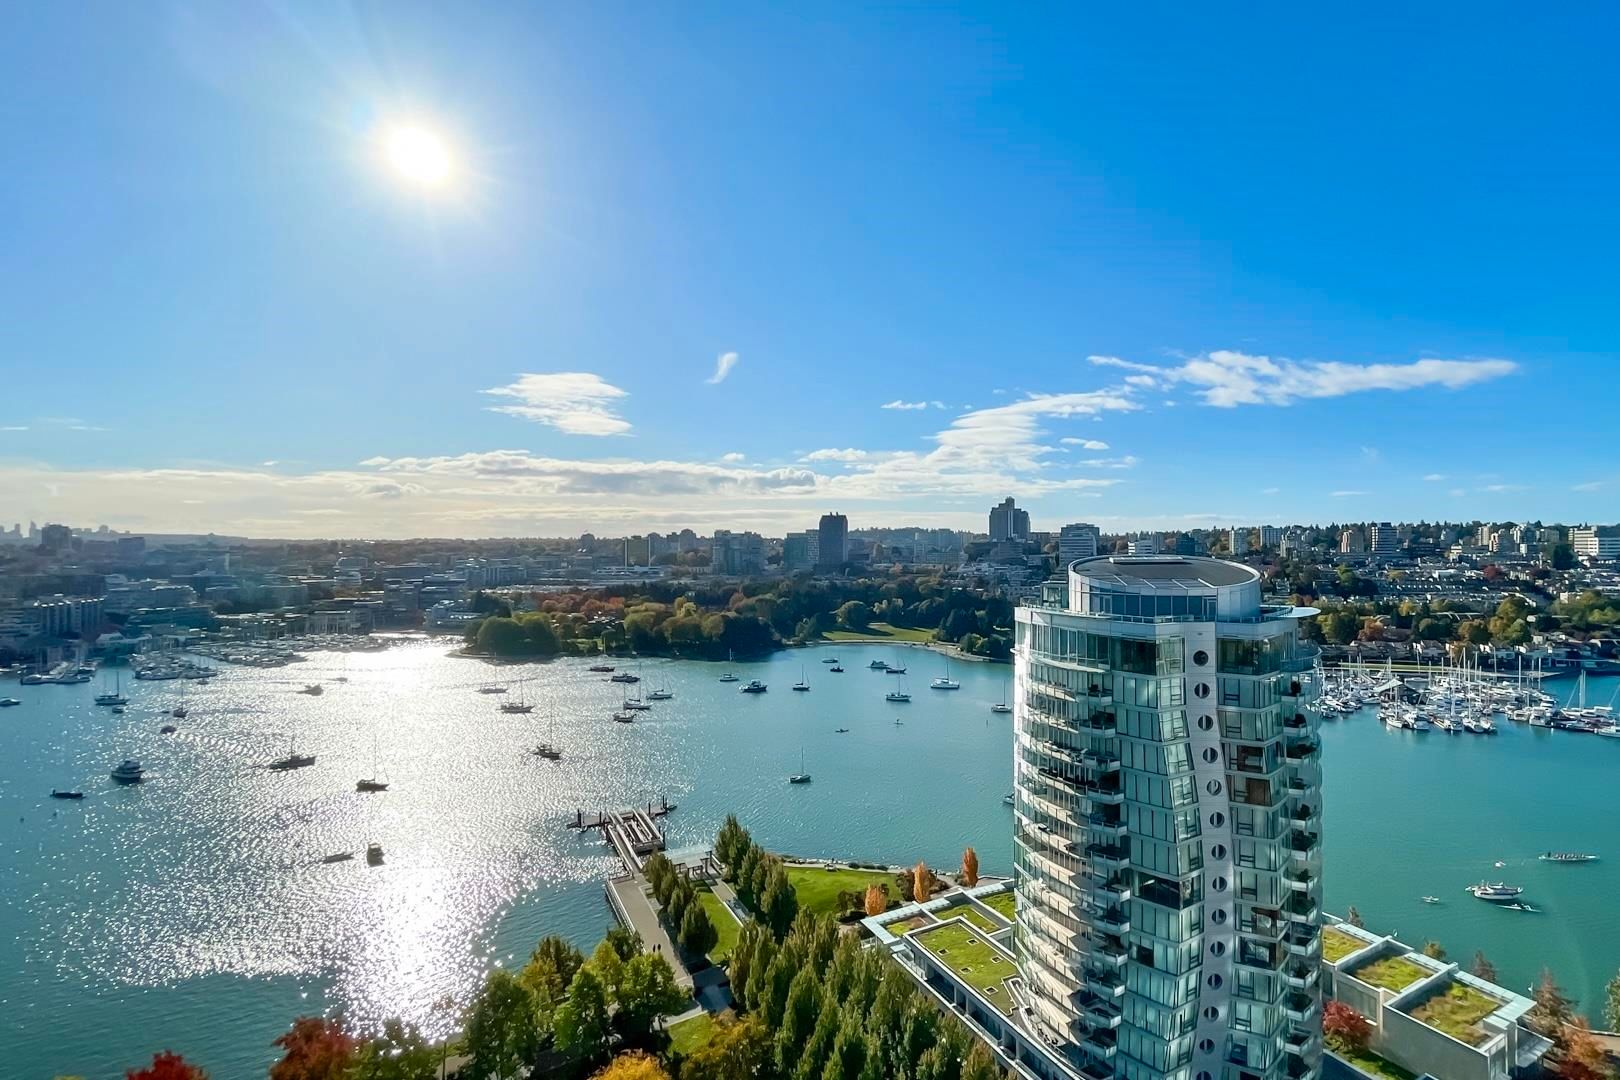 """Main Photo: 2505 1483 HOMER Street in Vancouver: Yaletown Condo for sale in """"THE WATERFORD BY CONCORD PACIFIC"""" (Vancouver West)  : MLS®# R2625455"""